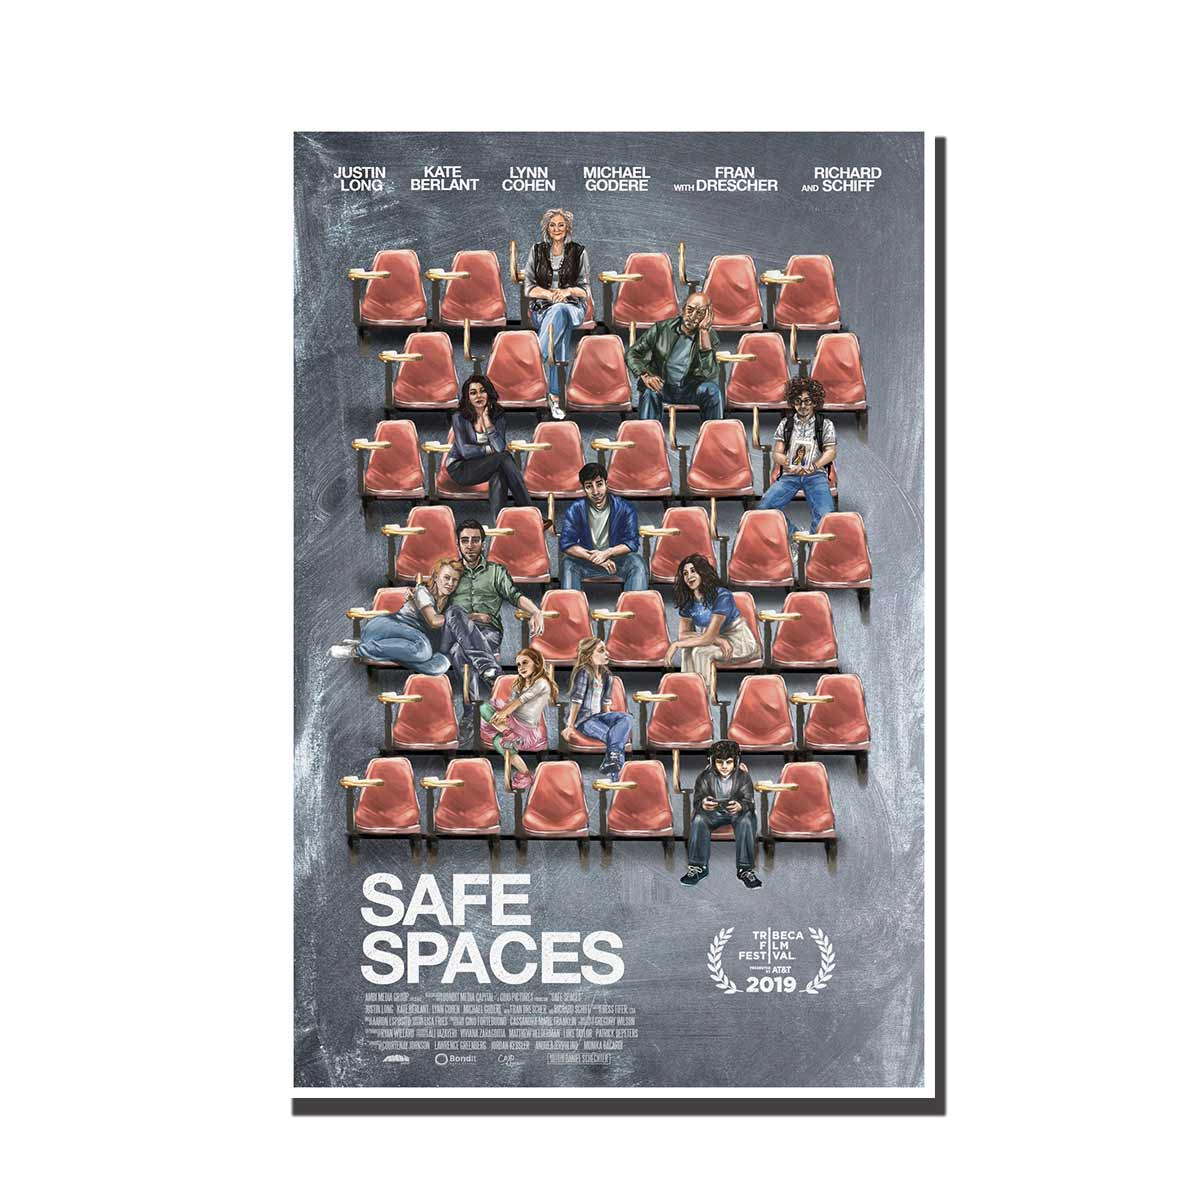 C246 Safe Spaces Movie 2019 Art Silk Poster Pictures Decoration 24x32 24x36 12x18 27x40Print Canvas Custom Gift image